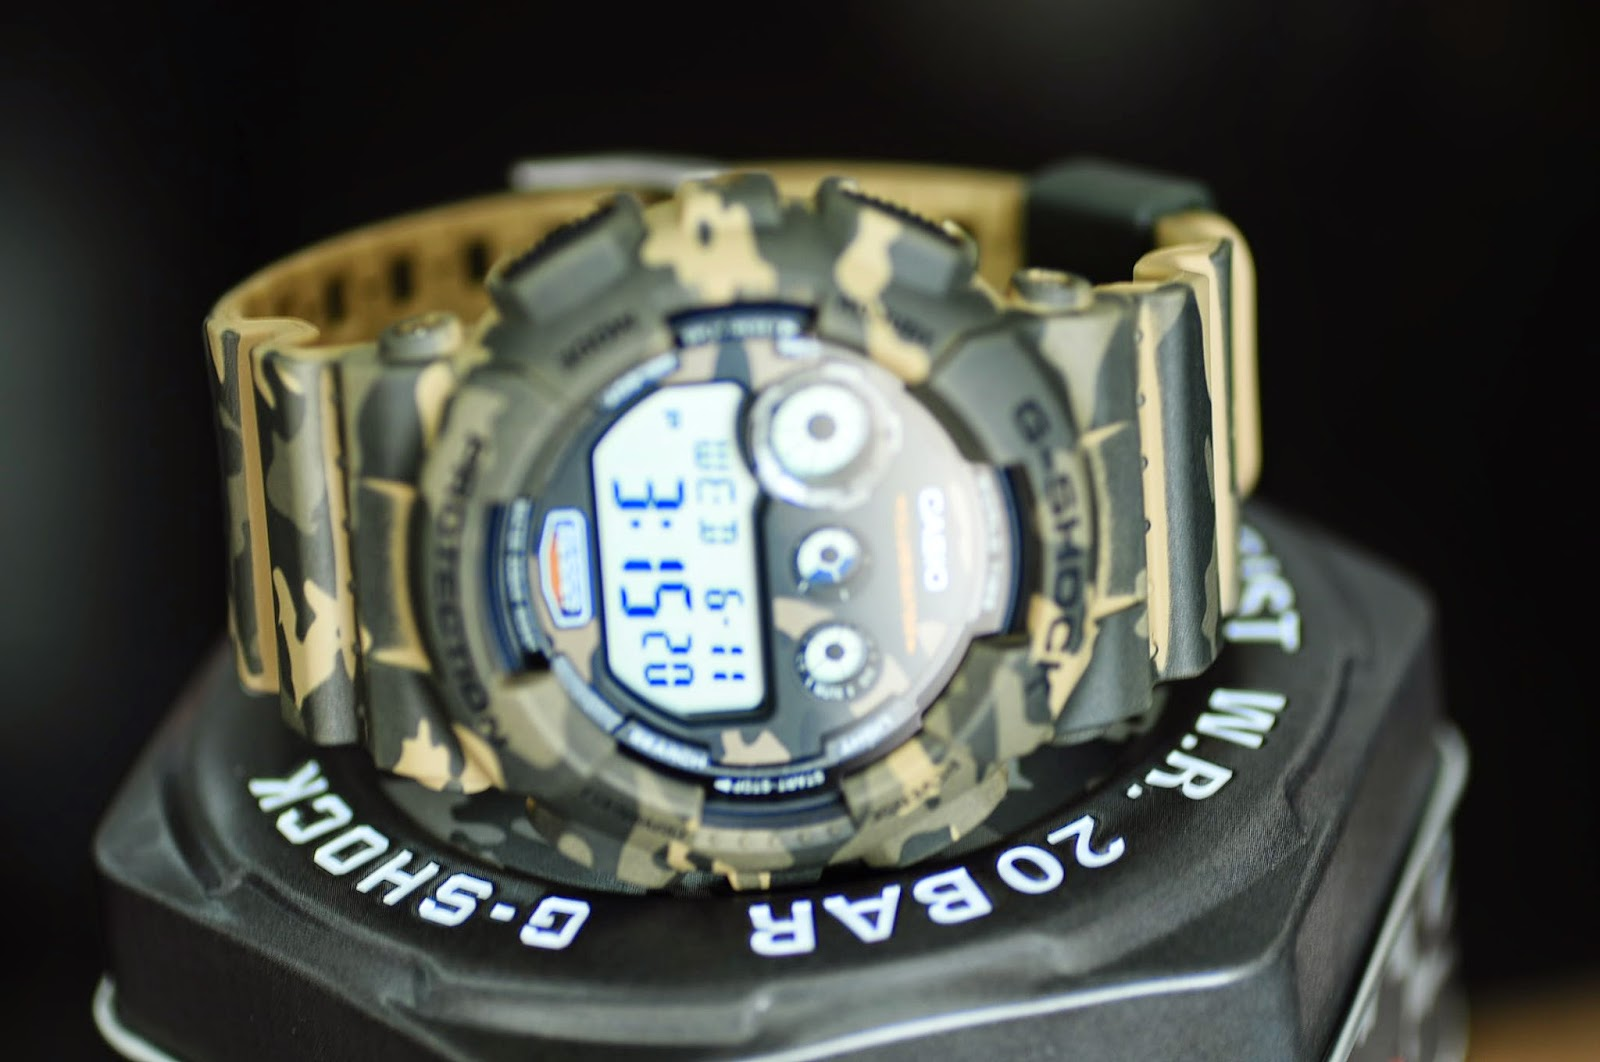 Mr Mrs Mike Branded Shop Wts Gshock Camouflage Gd 120cm 5dr Casio G Shock 4dr Contact 0164113915 Wechat Whatsapp Method Dealing Cod Postage Reason Selling Clearing Of Changing Other Hobby